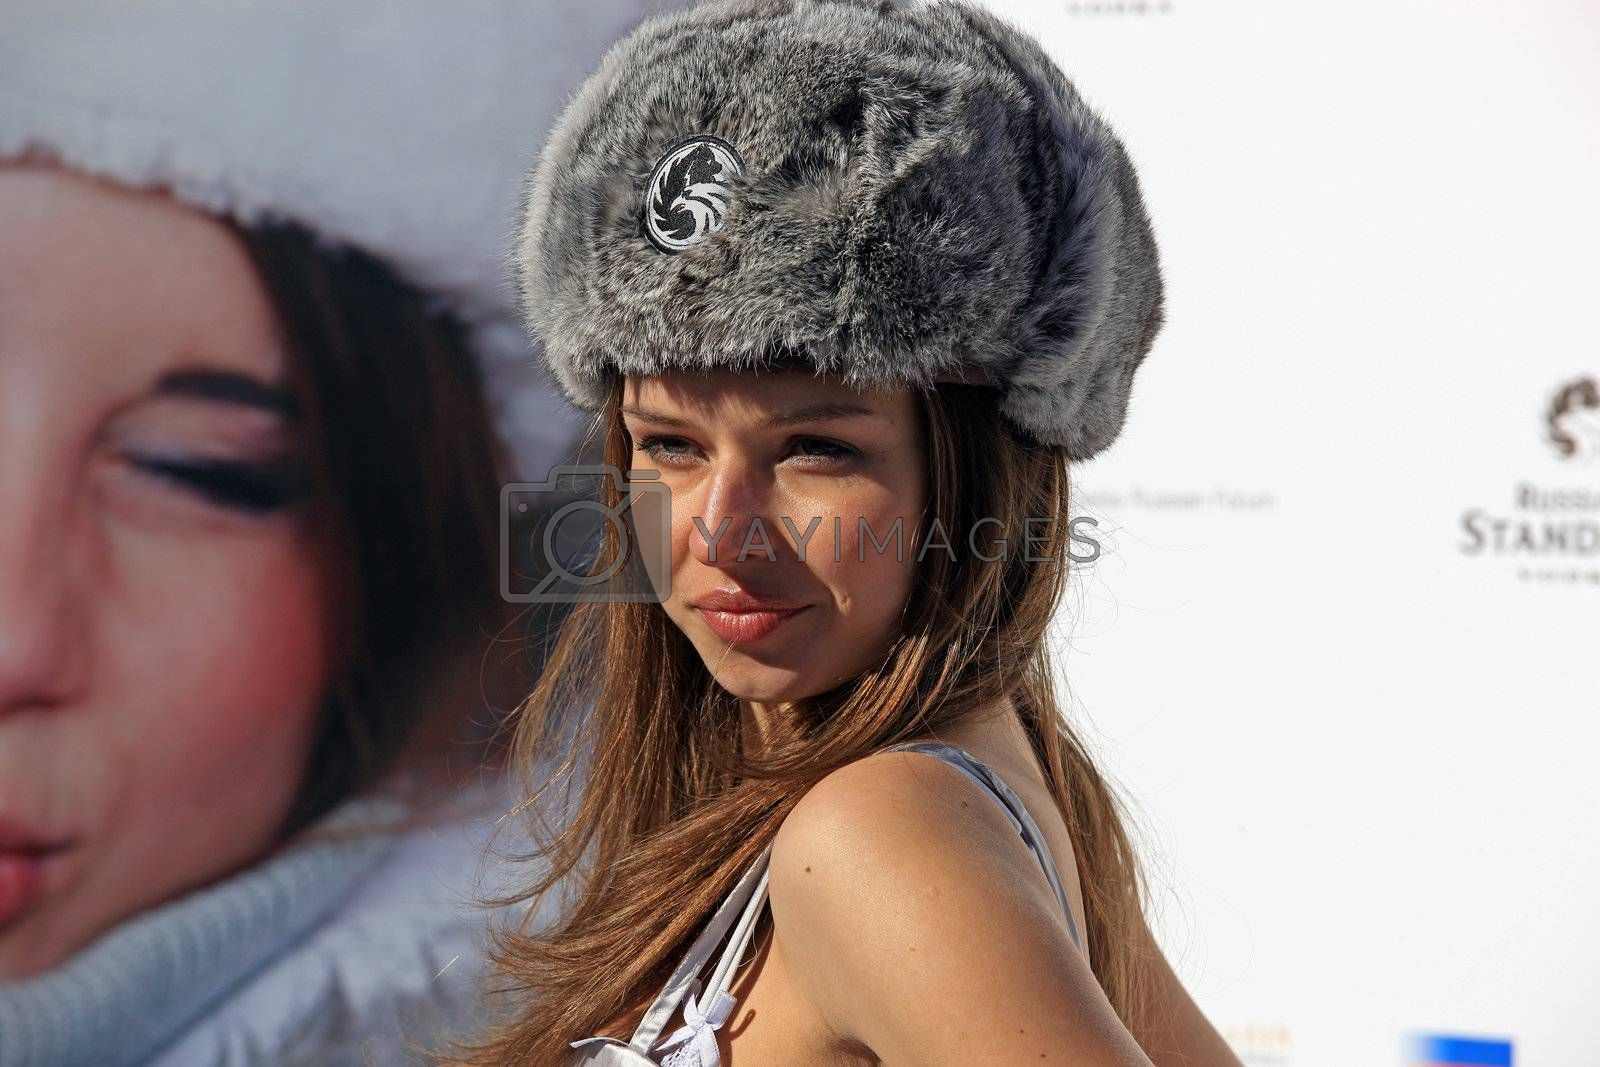 Miss Russia finalists 2008 in St. Moritz by monner